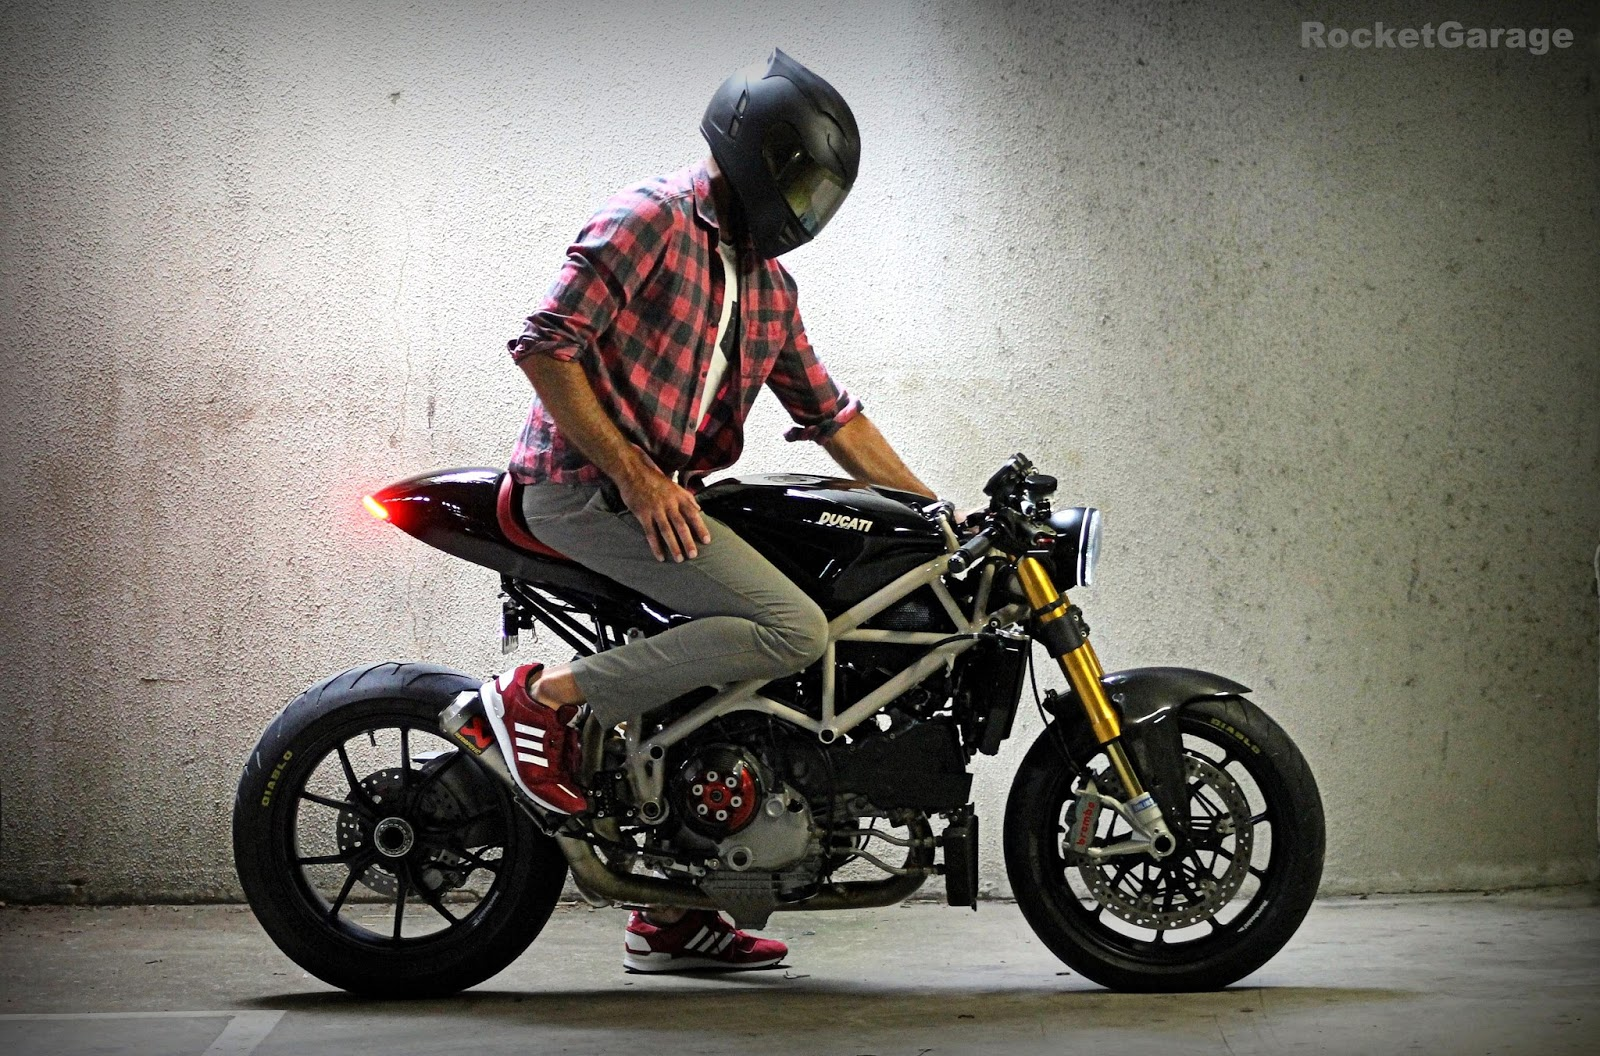 Ducati Streetfighter Cafe Racer